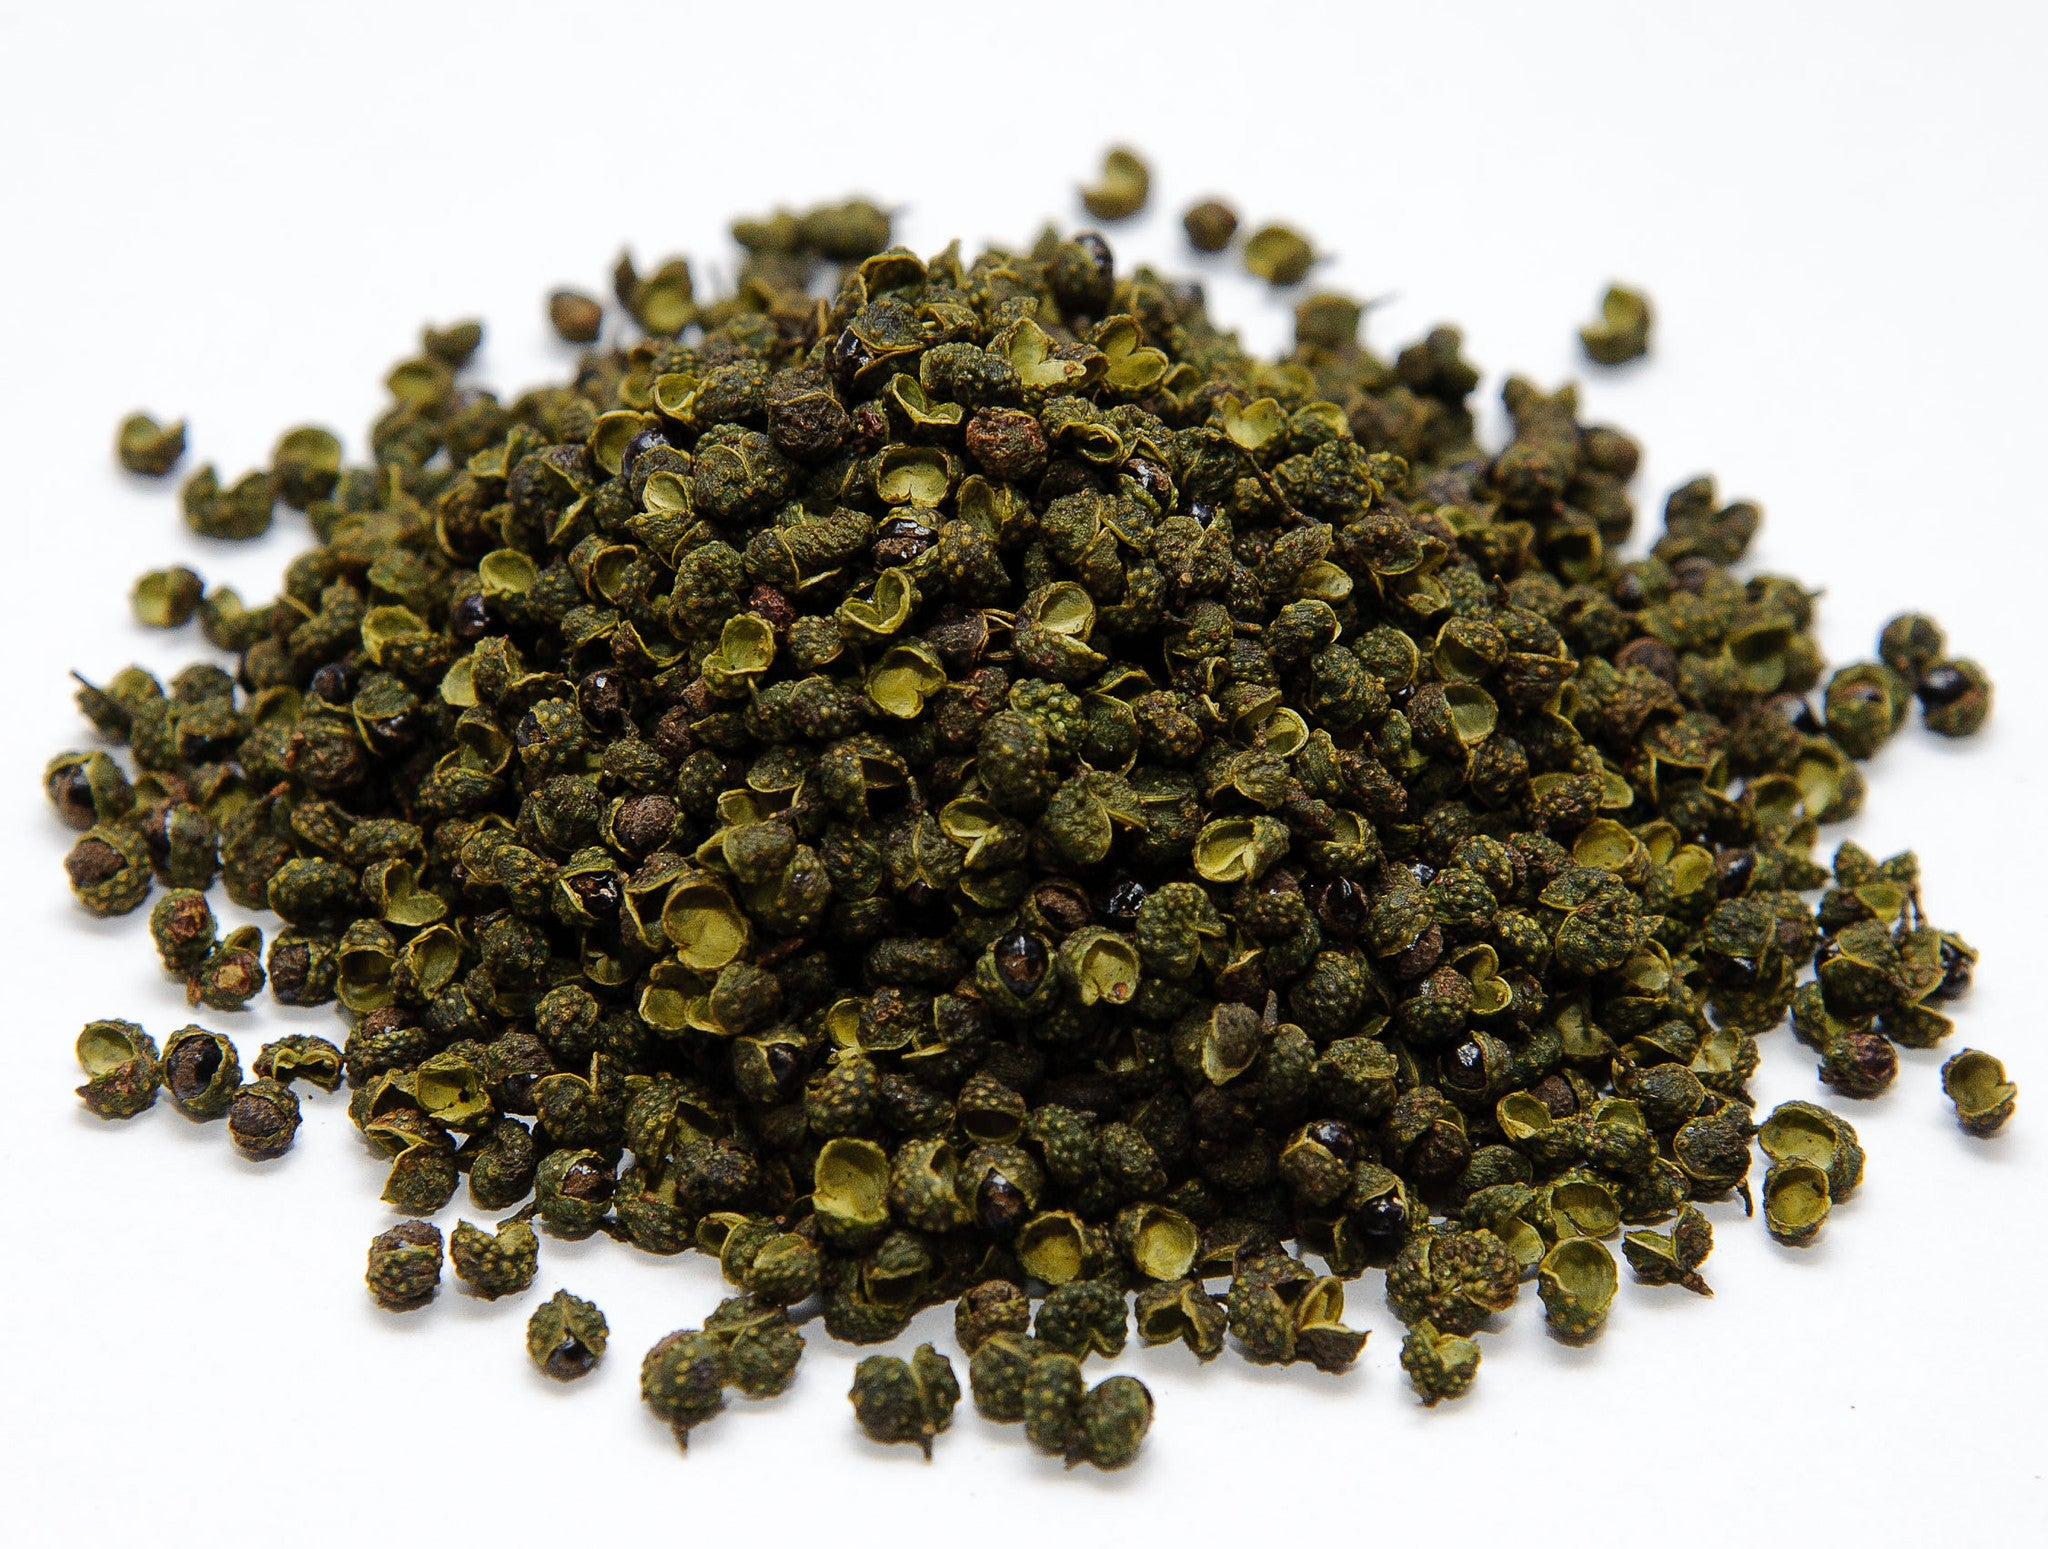 Shengchubao Green Sichuan Peppercorns -Top Quality 3.5oz, 7oz 青花椒